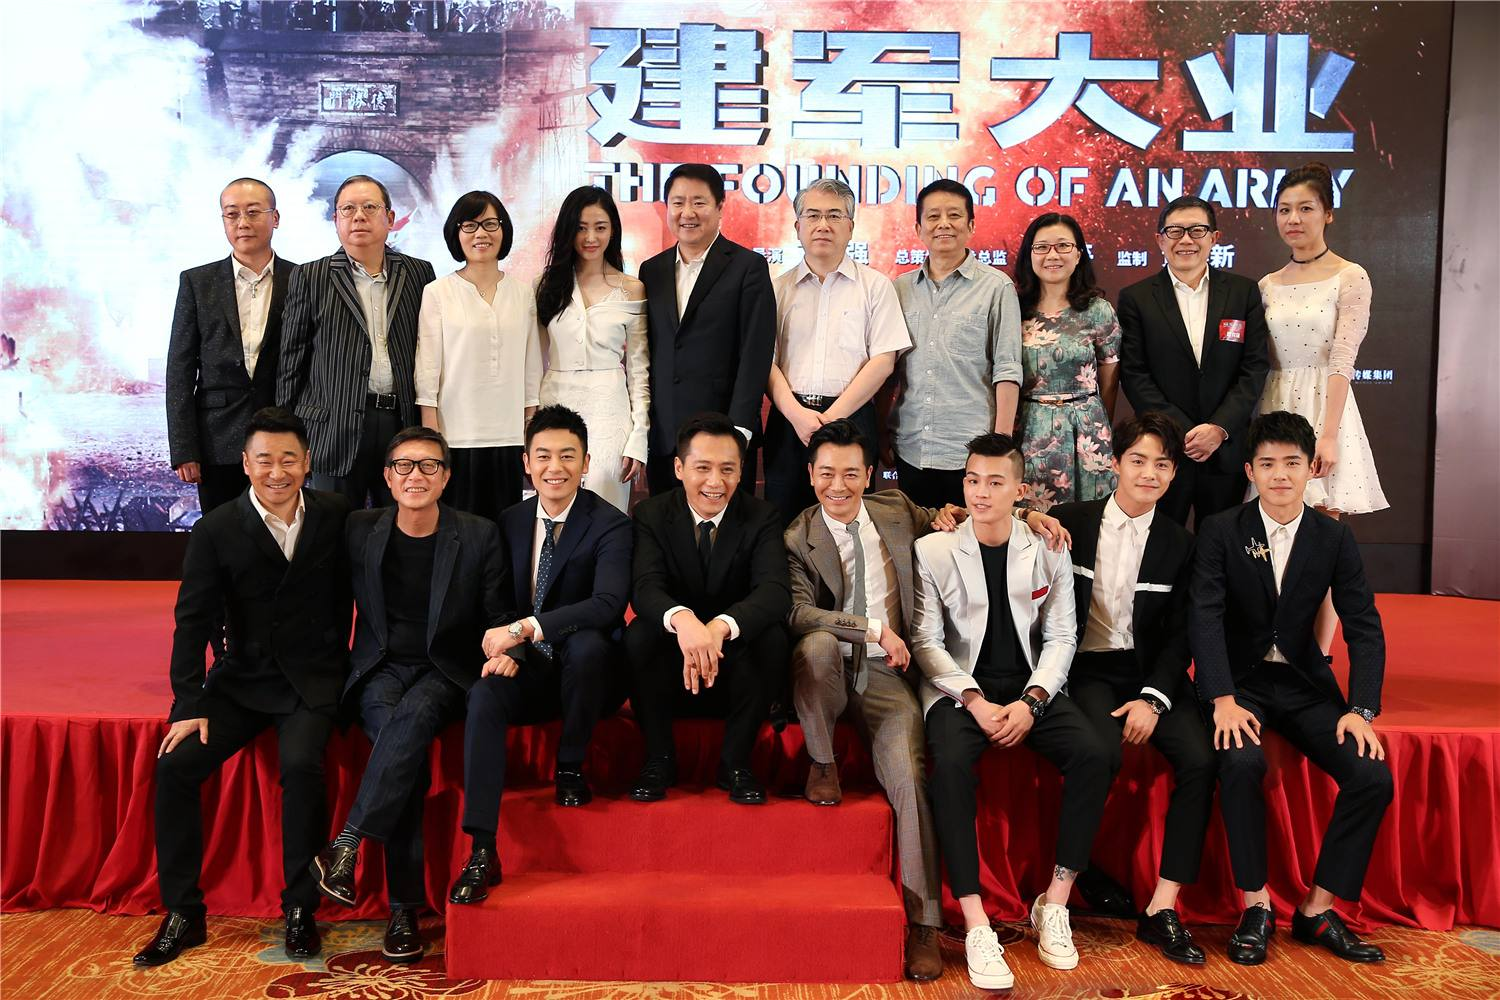 "Special collected porcelain of ""The prosperity of the world"" unveiled in the Shanghai release conference of the movie ""The Founding of An Army"""